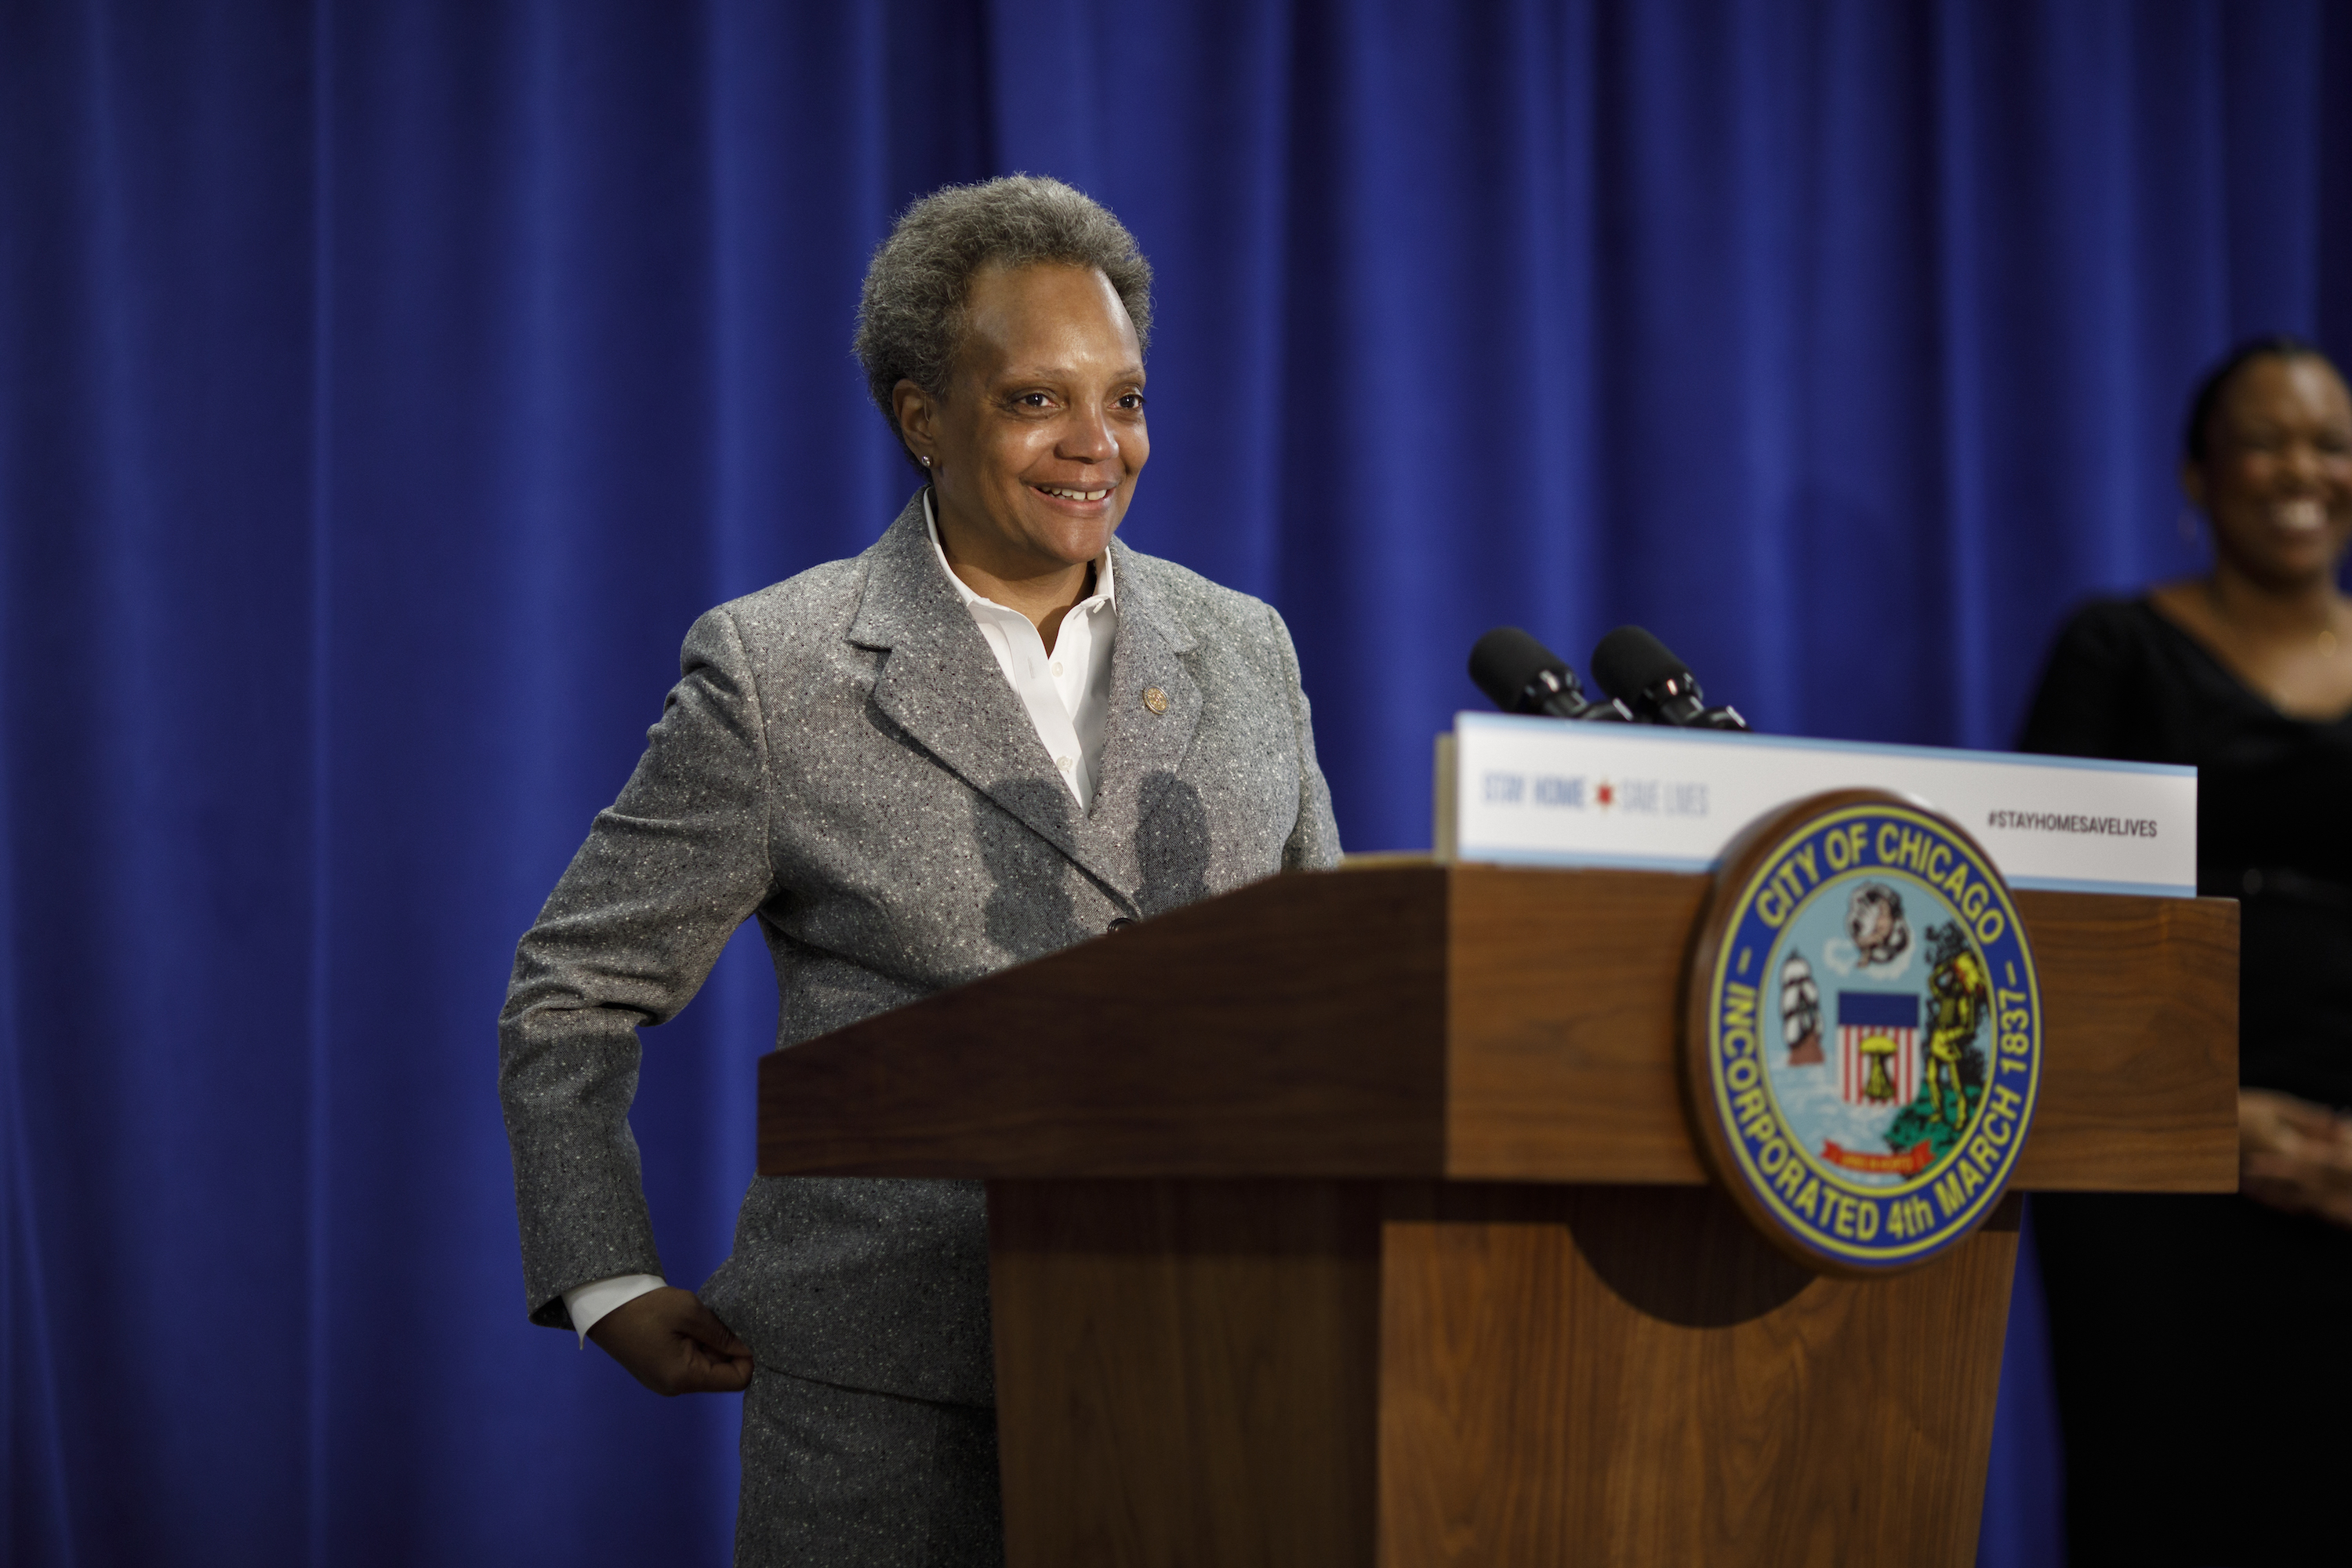 Hilarious Memes Of Mayor Lori Lightfoot Protecting Chicago Are Exactly What We Need Right Now